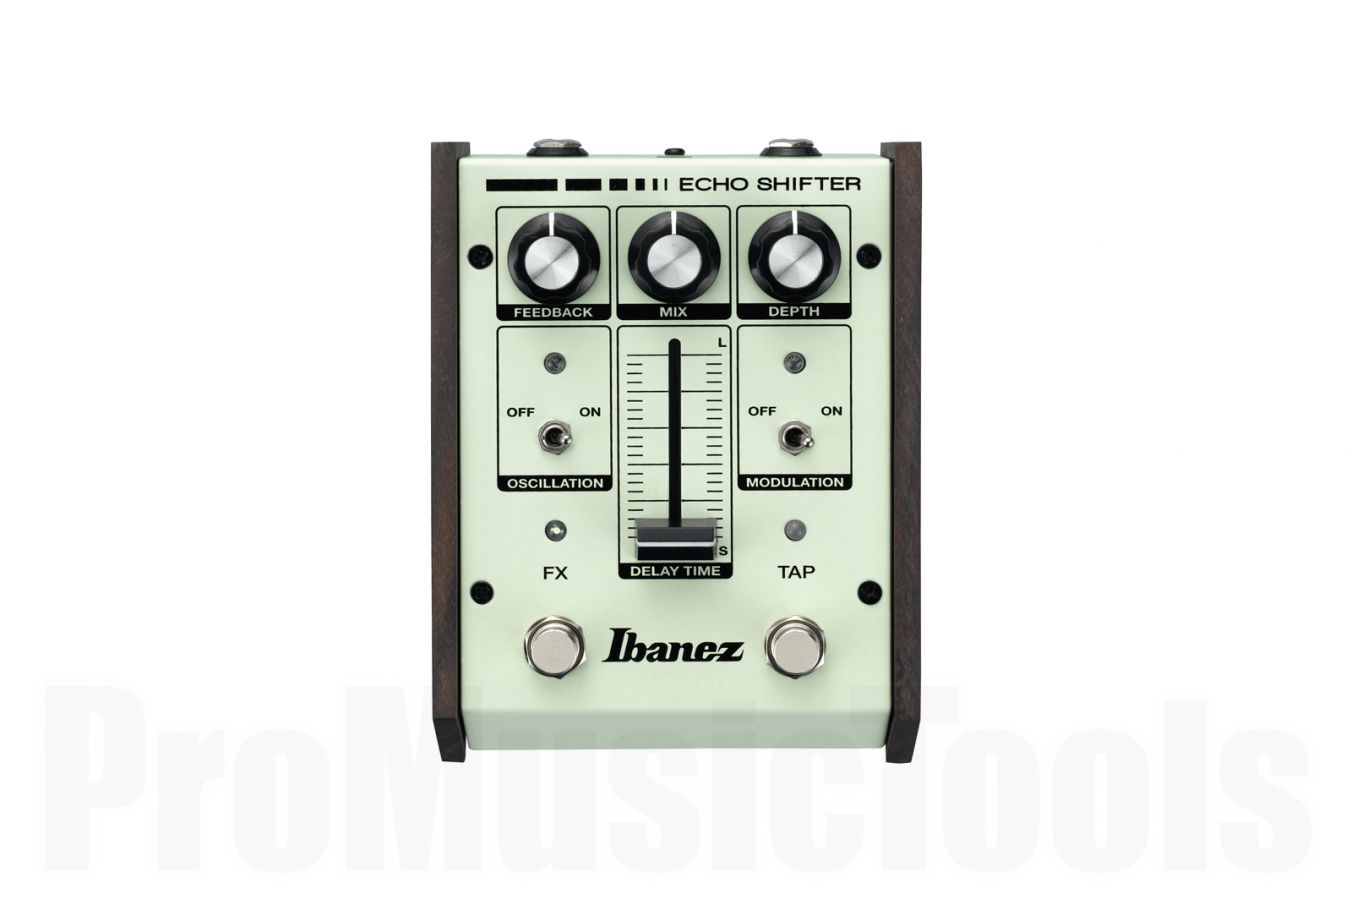 Ibanez ES2 Echo Shifter Analog Delay - demo